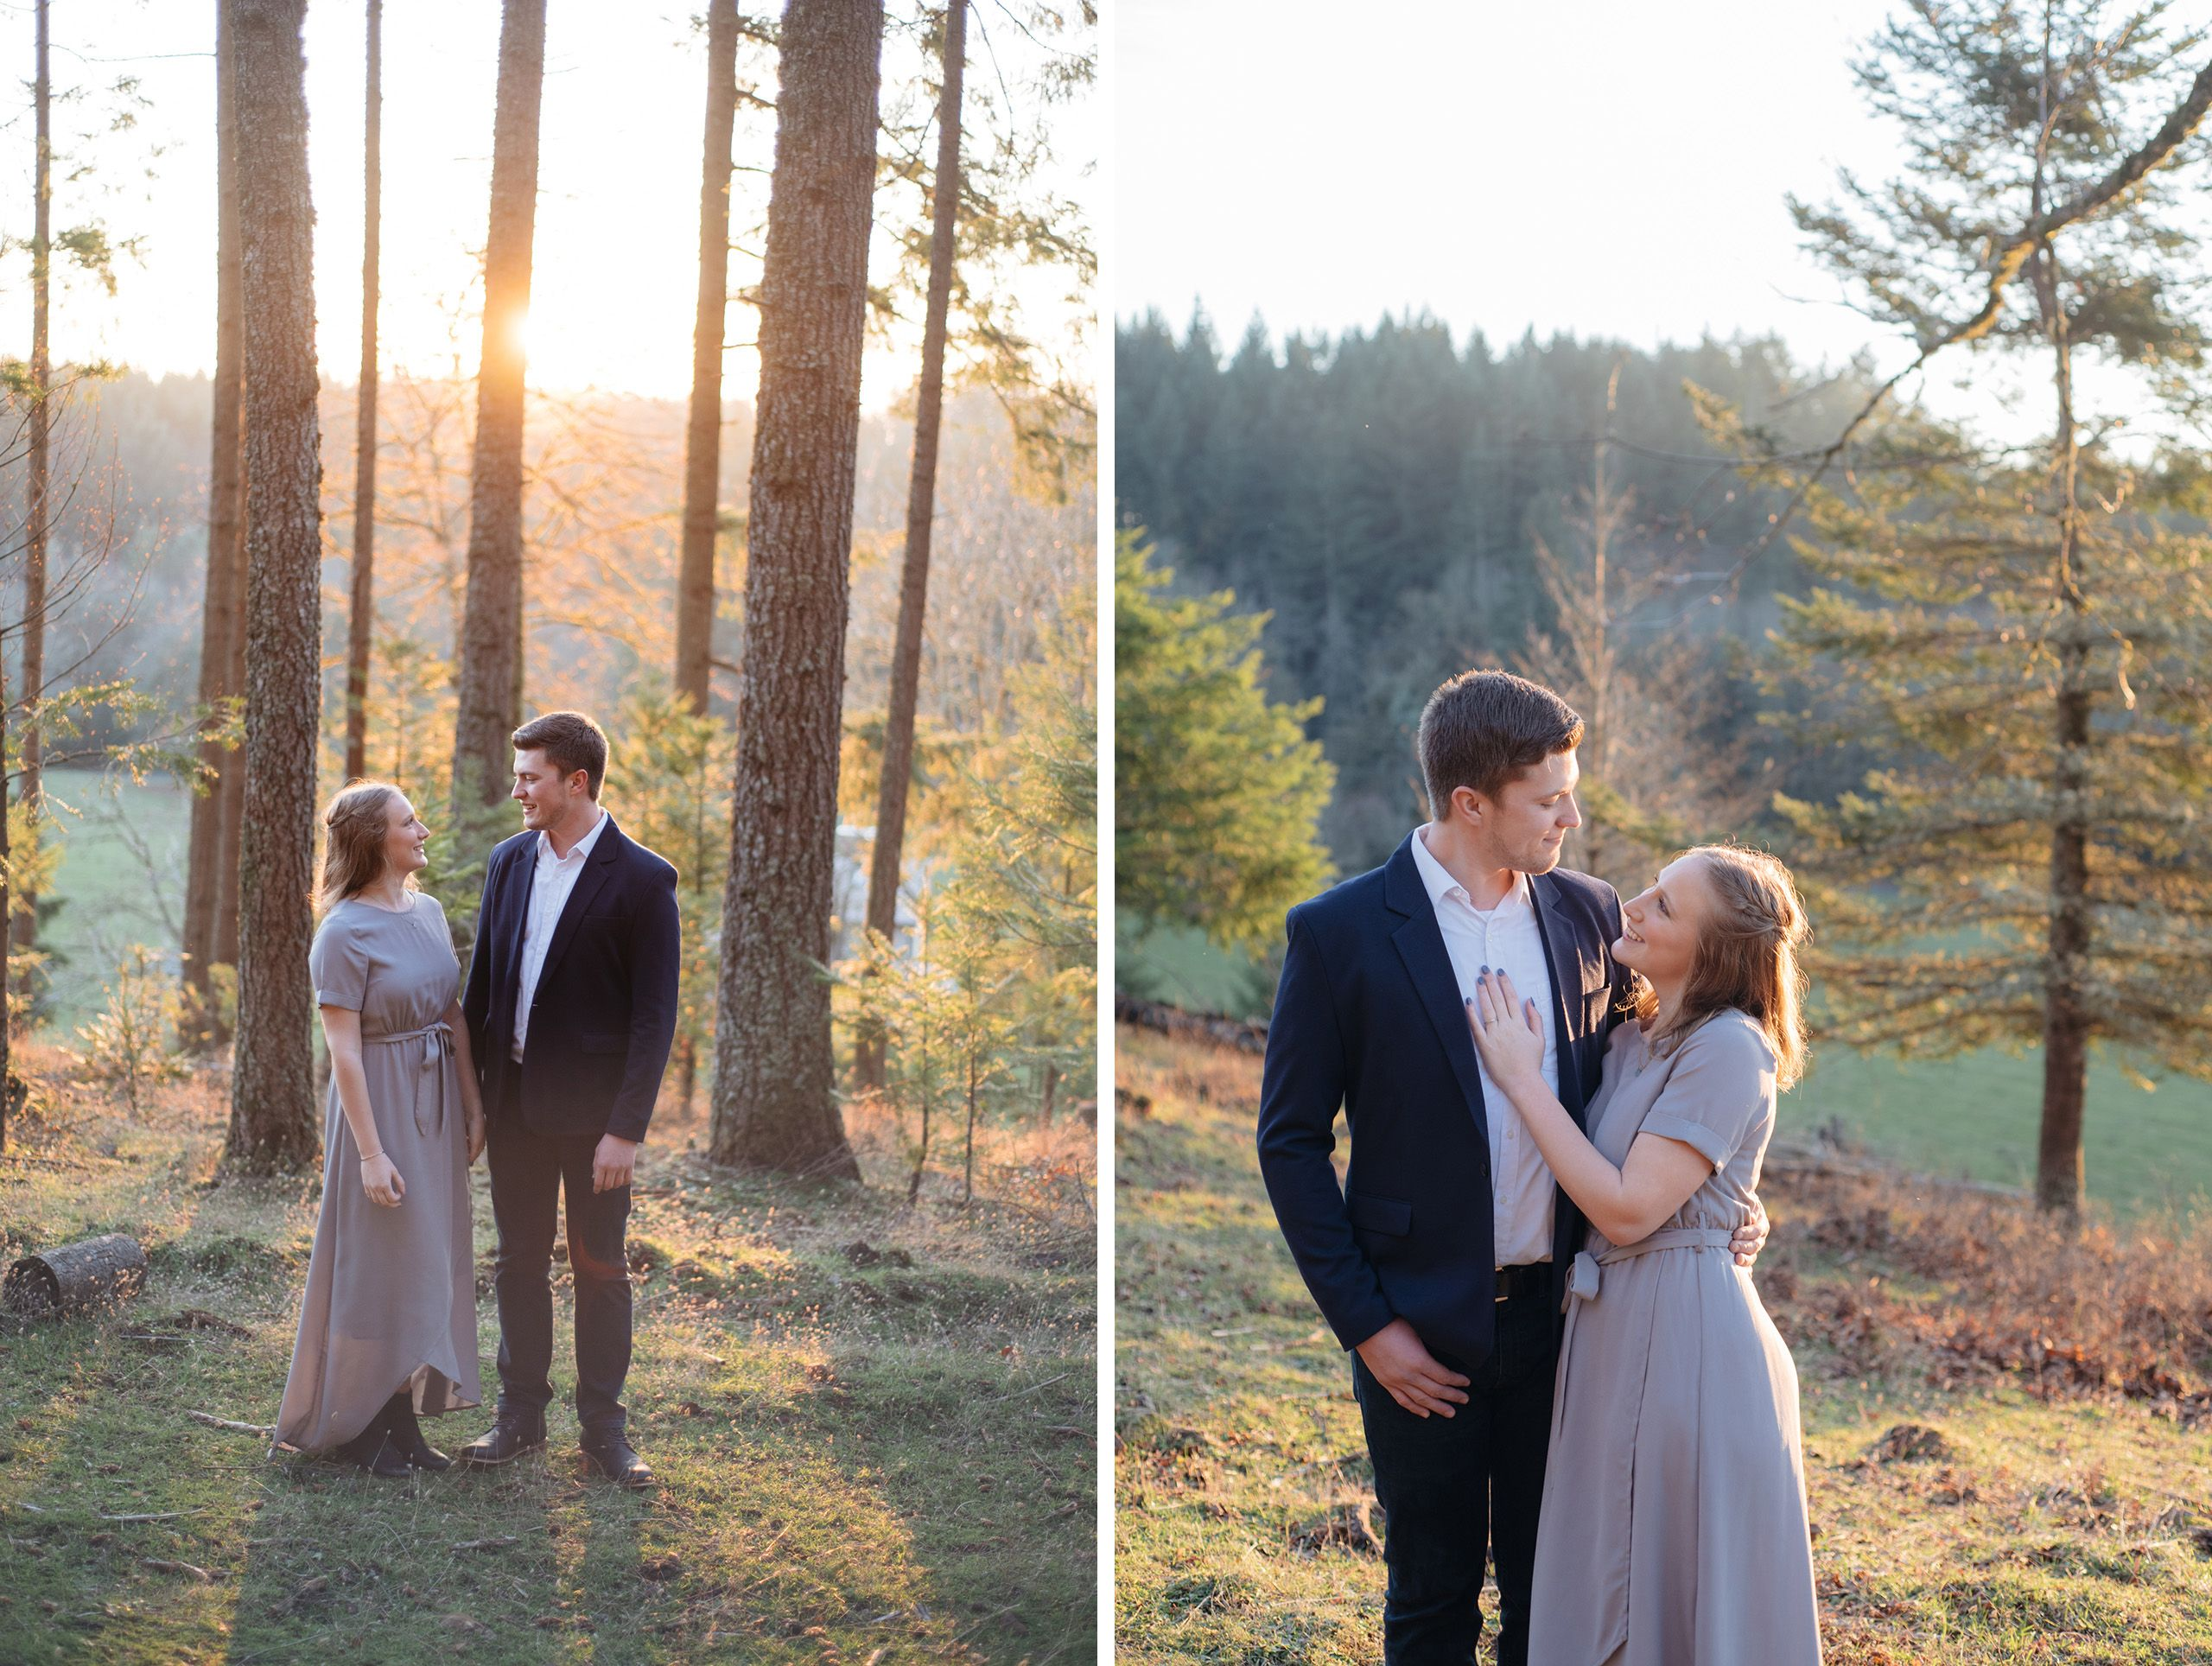 Winter engagement photos in Oregon